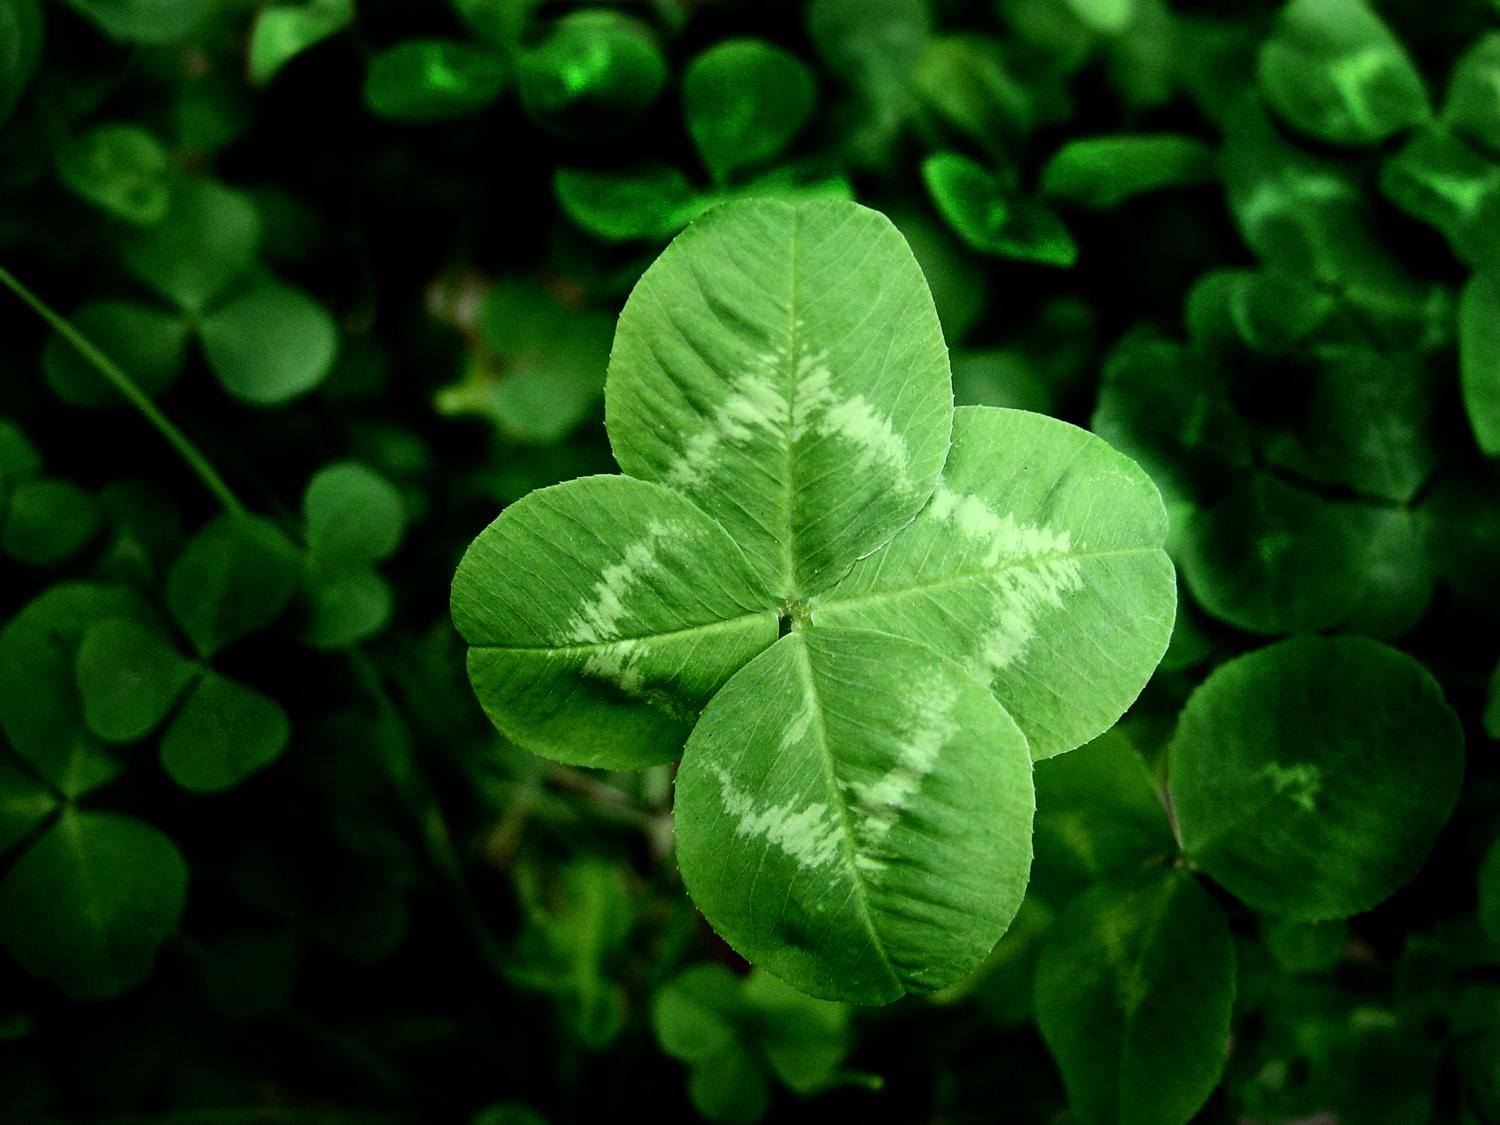 - Four leaf clover - Techno-Impressionist Museum - Techno-Impressionism - art - beautiful - photo photography picture - by Tony Karp